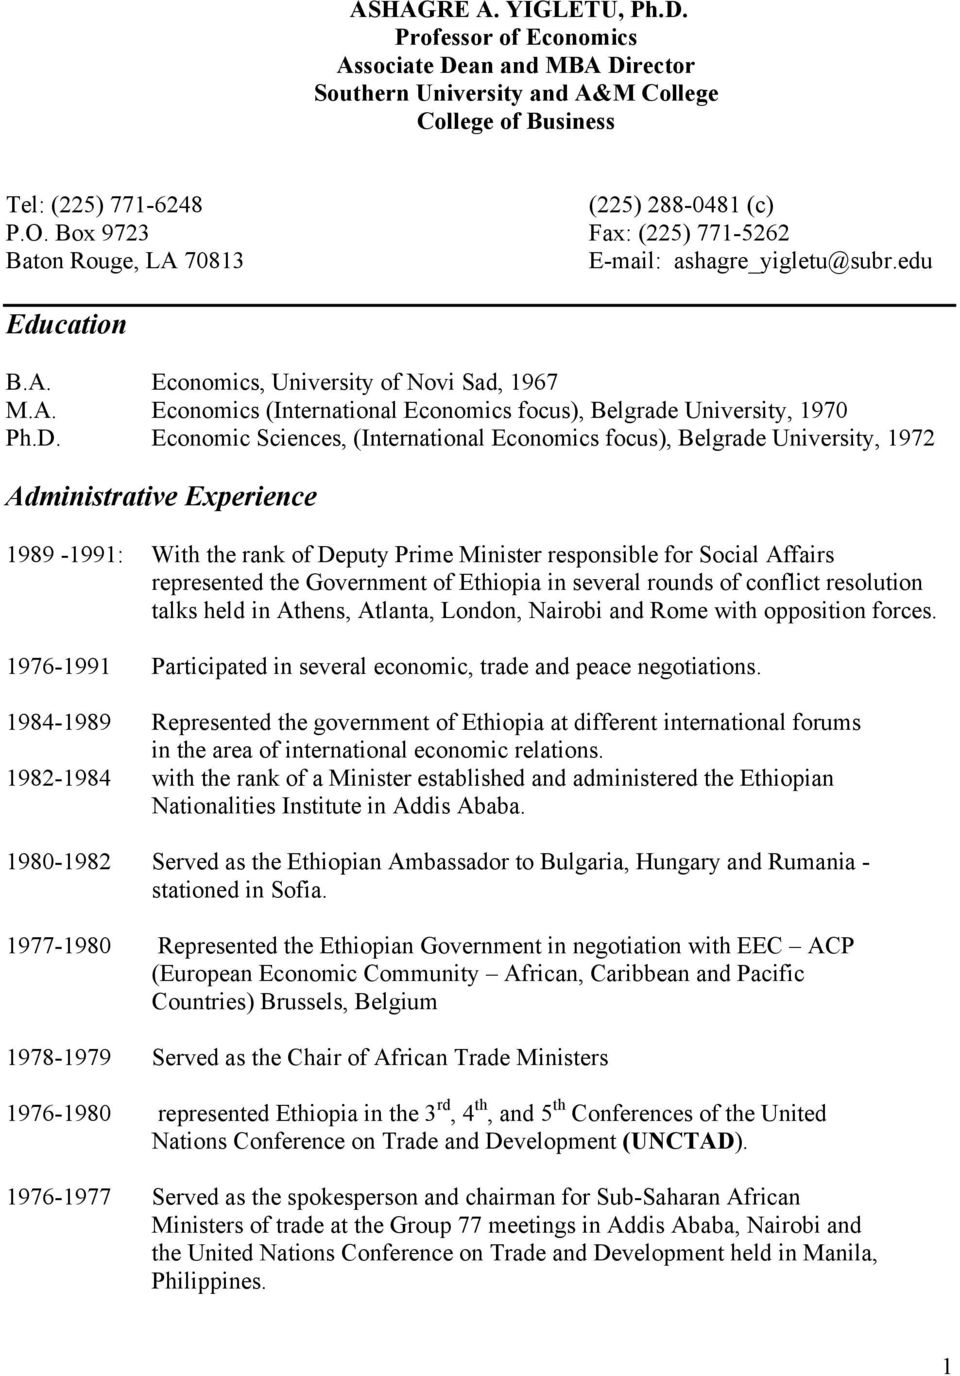 D. Economic Sciences, (International Economics focus), Belgrade University, 1972 Administrative Experience 1989-1991: With the rank of Deputy Prime Minister responsible for Social Affairs represented